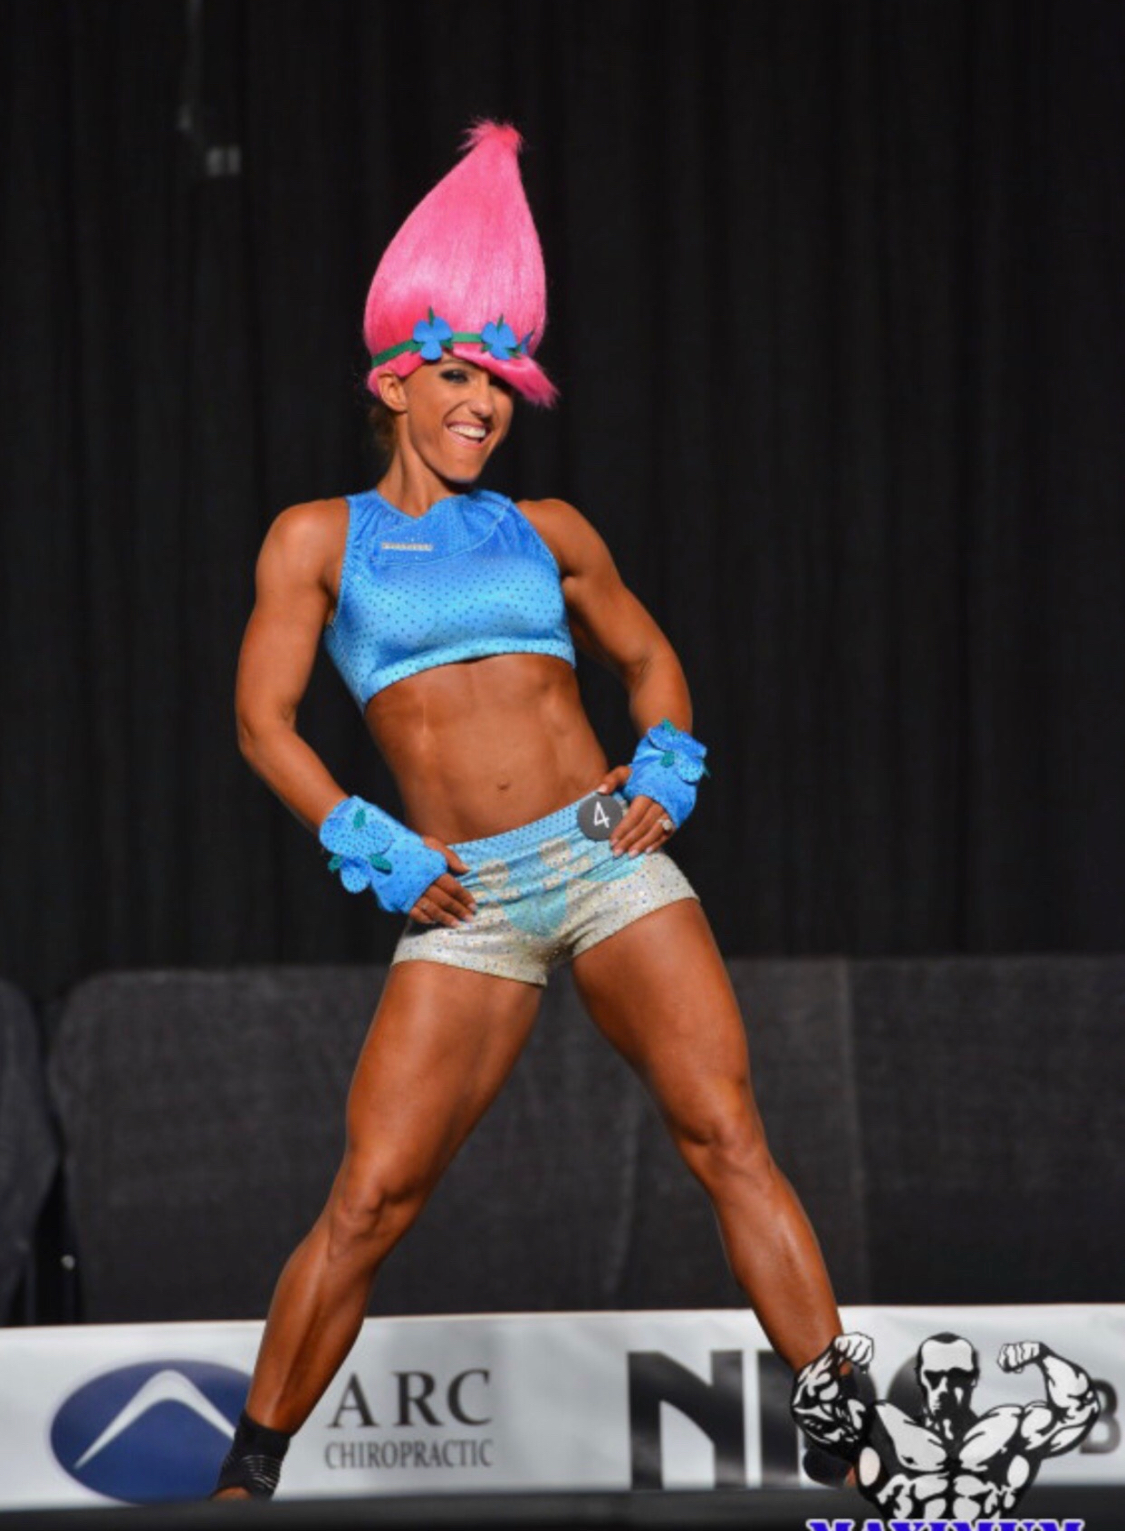 Kristy Avery Fitness Competition Merry Christine Couture Suit